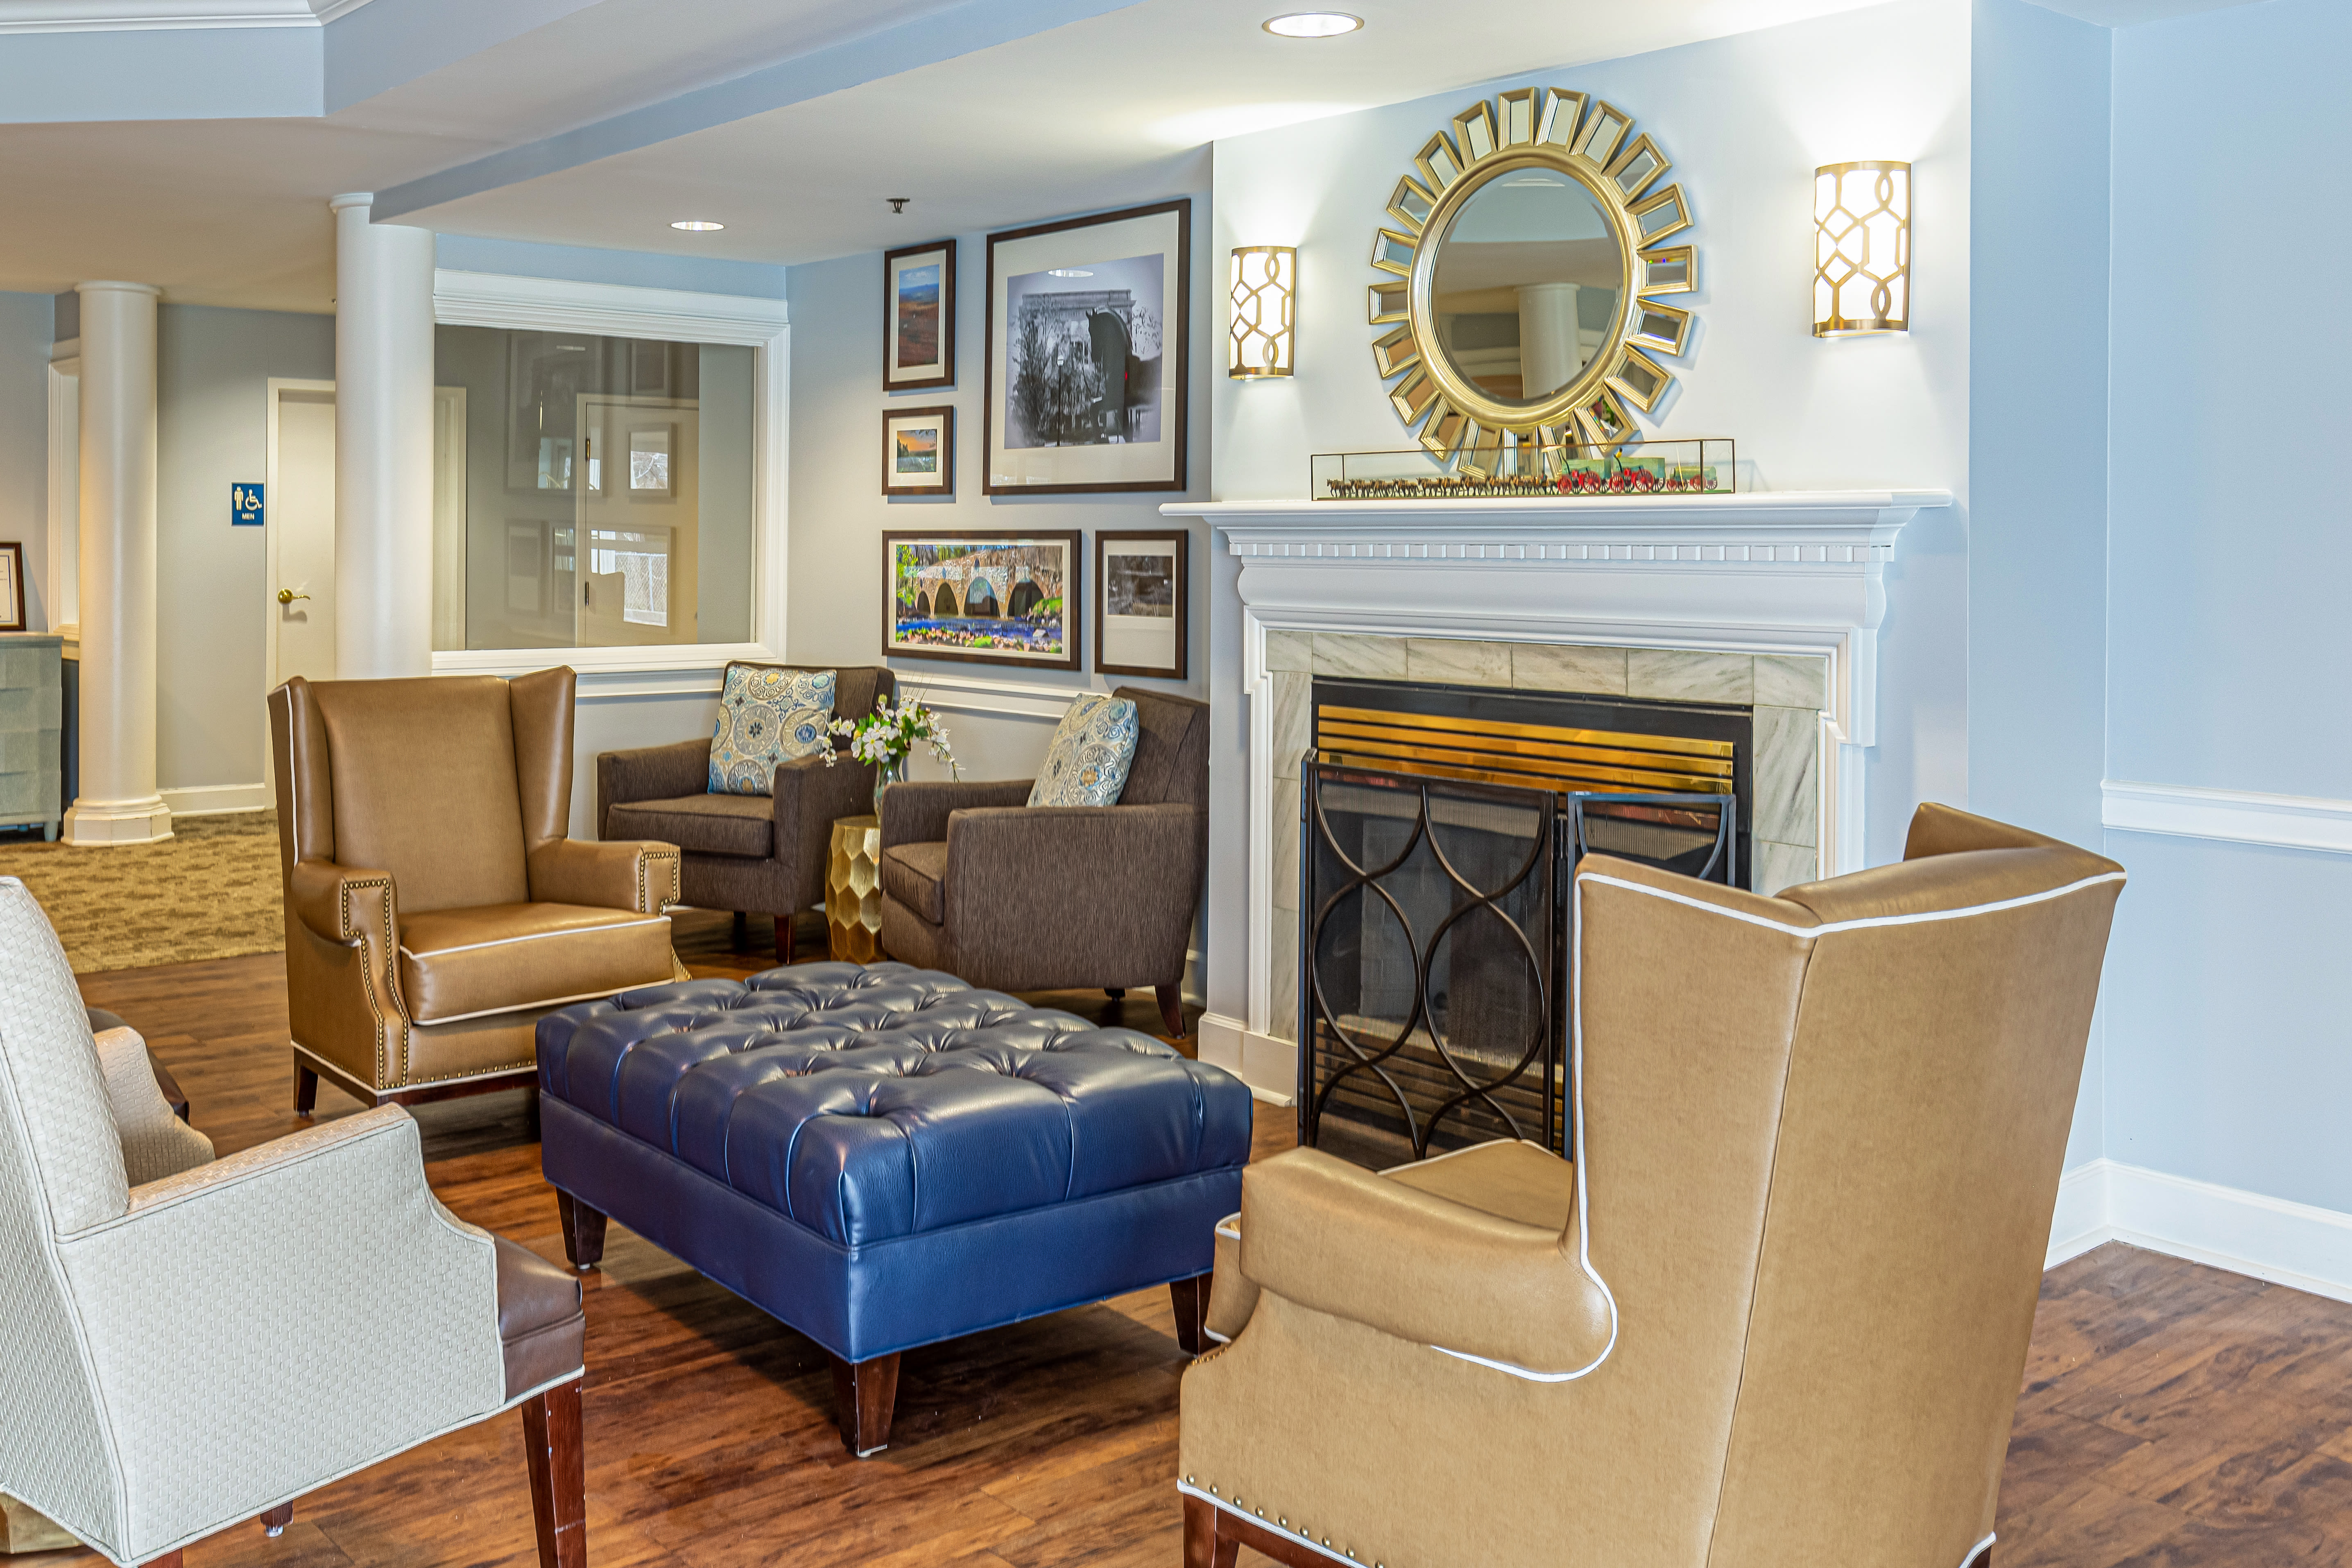 Allentown senior living has amazing care options